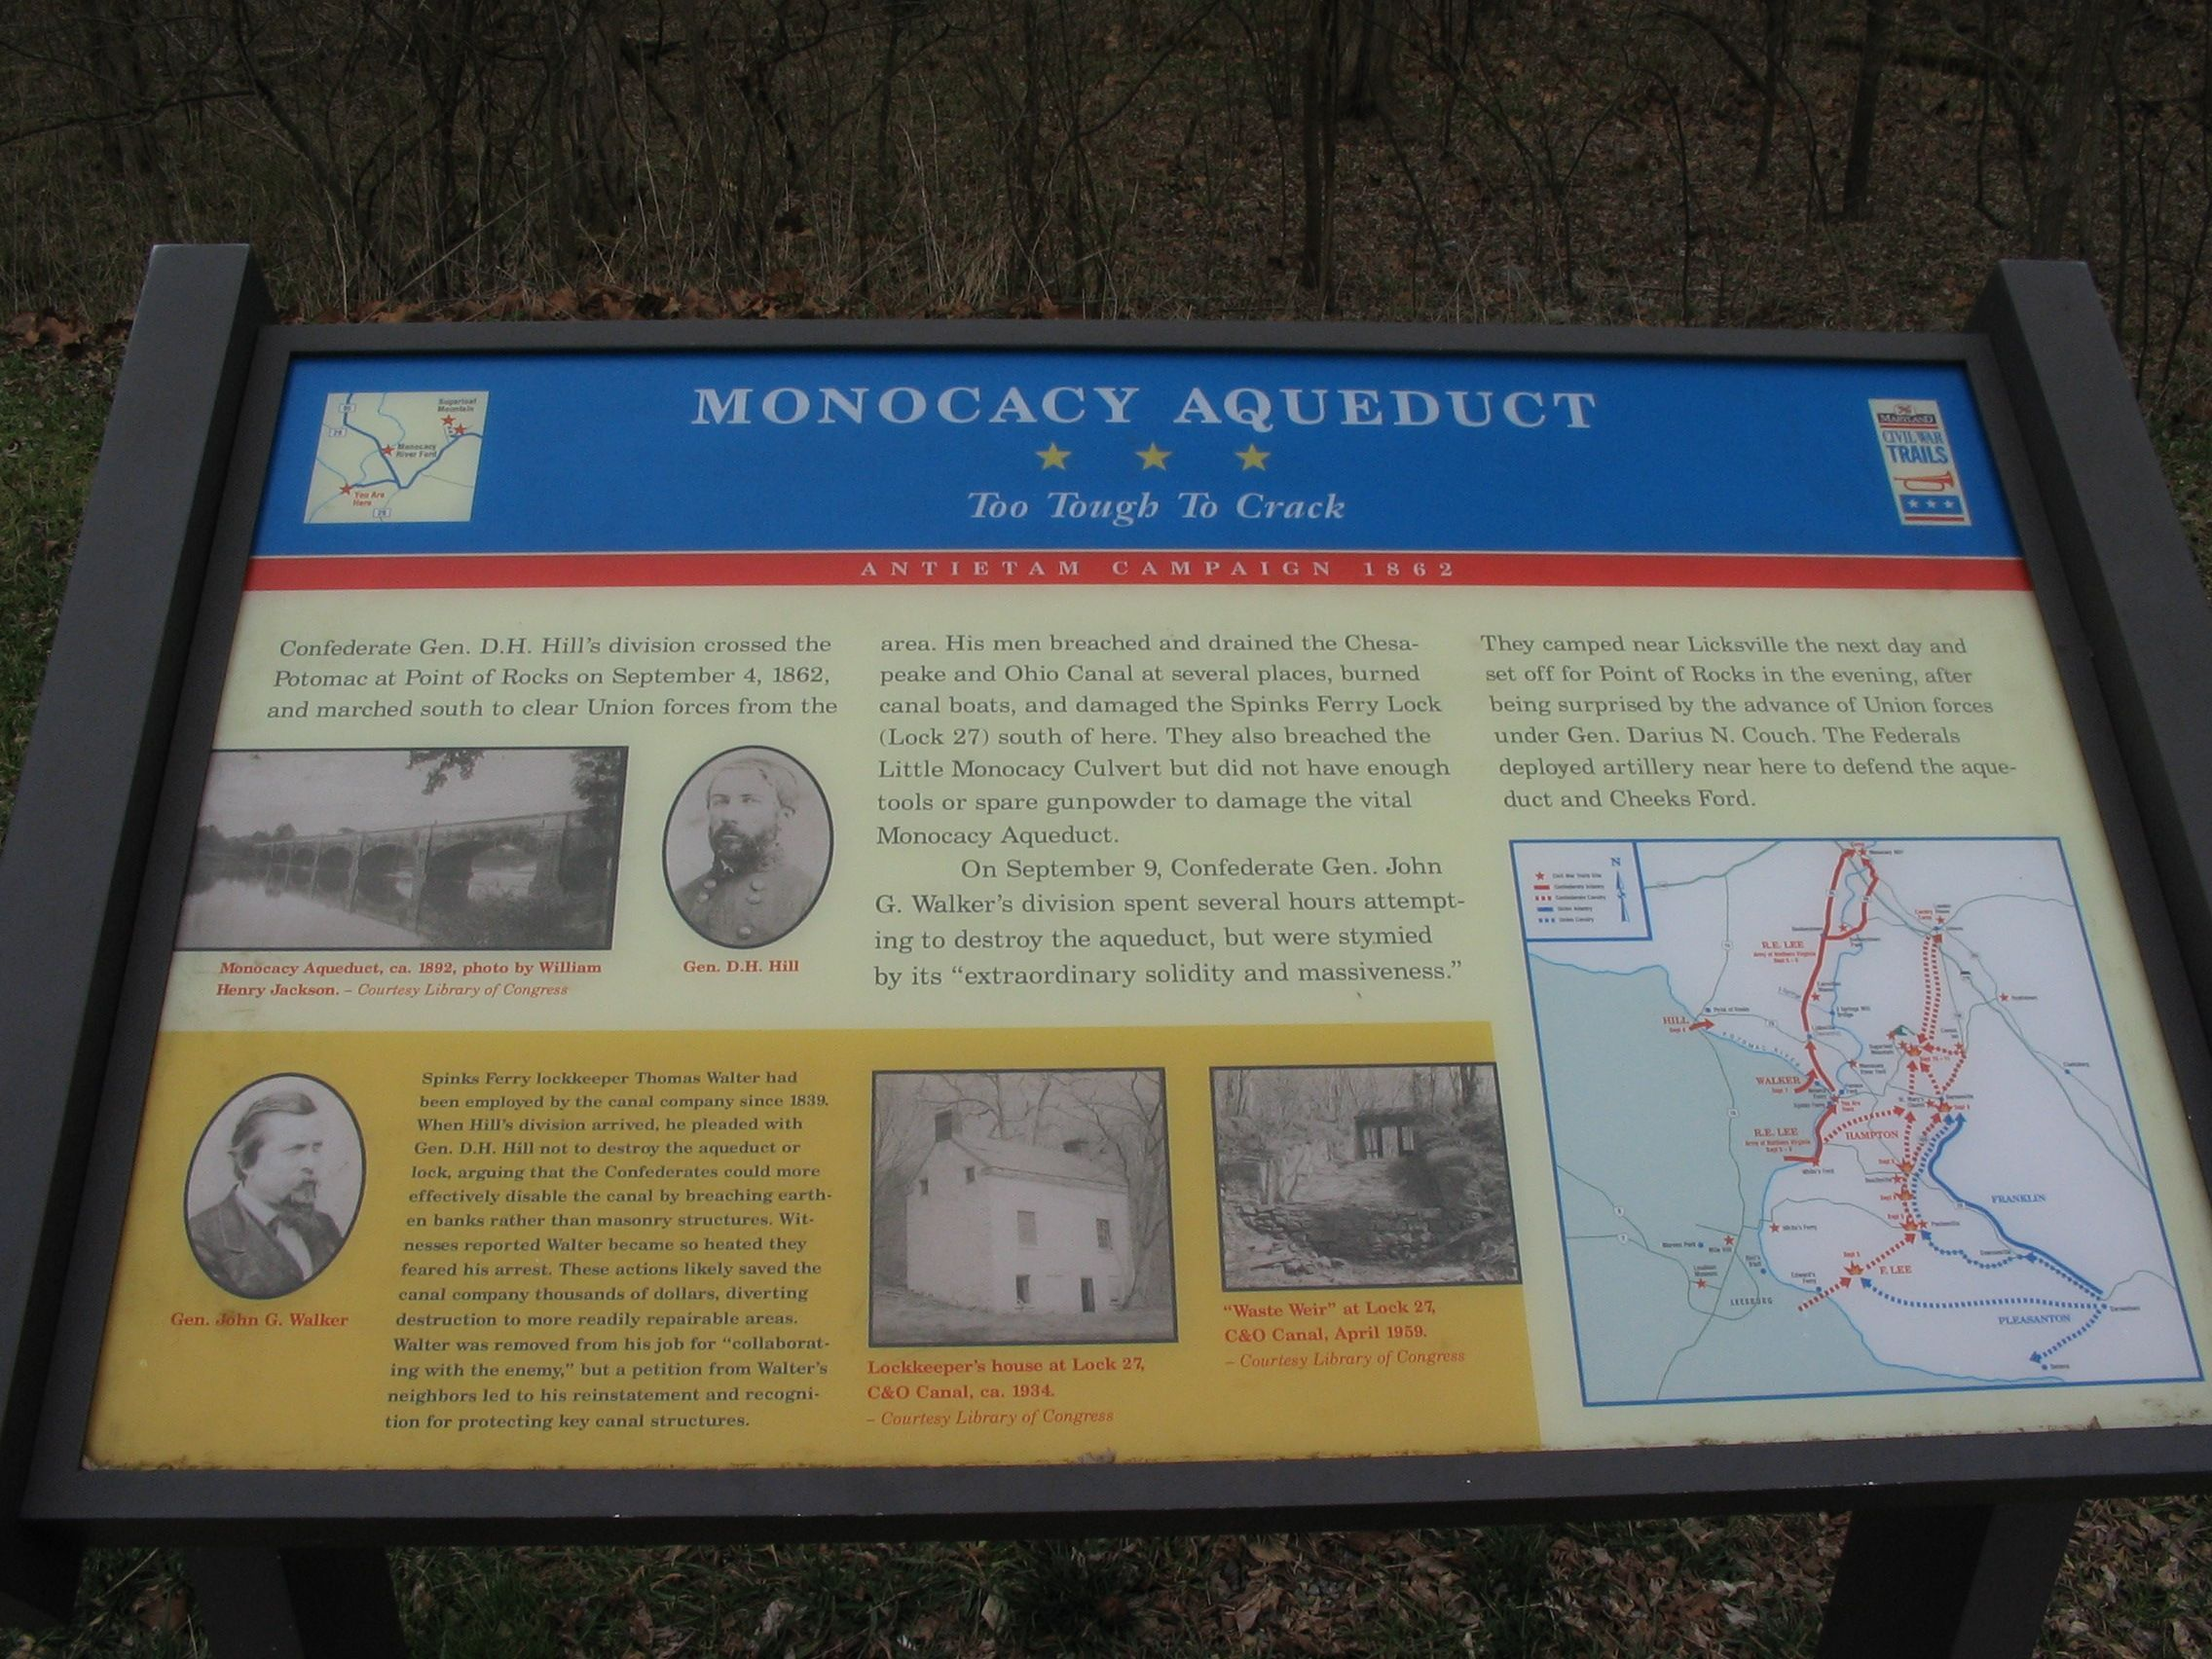 Another View of the Marker